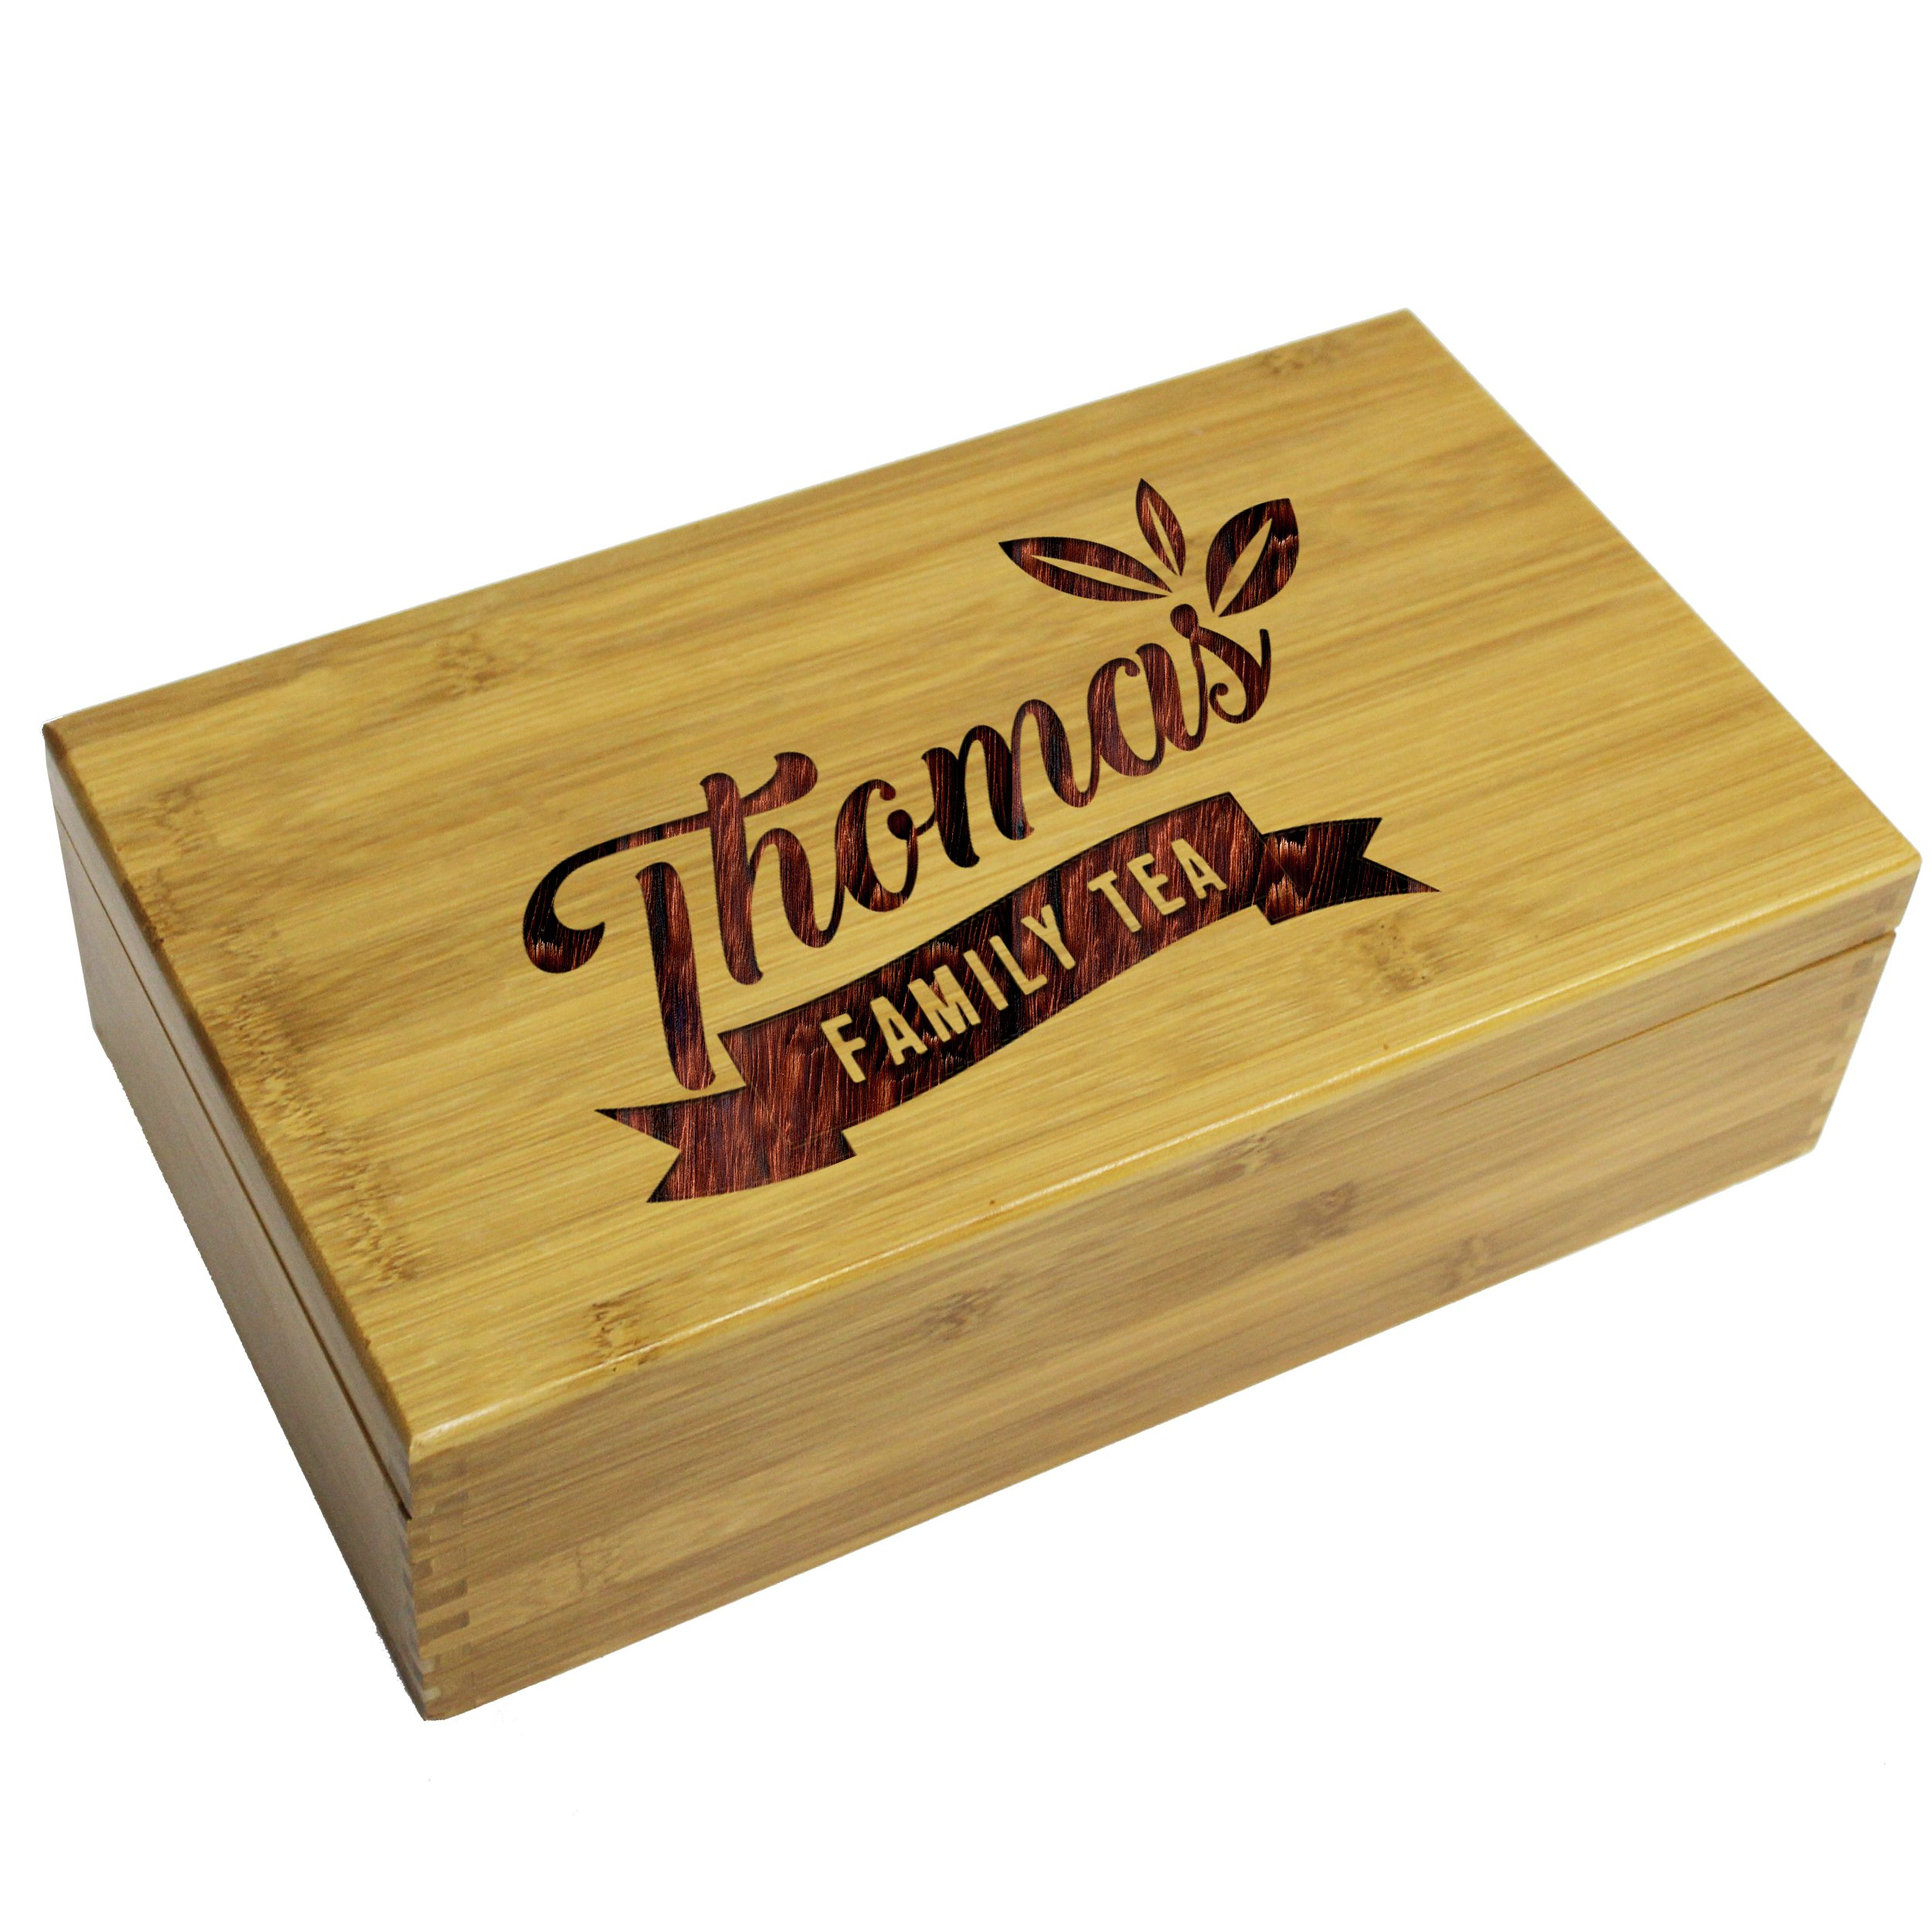 Personalized Wooden Tea Box Storage Organizer Caddy and Tea Bag Holder, Engraved Gift for Housewarming, Kitchen, Mom, Grandma or Family